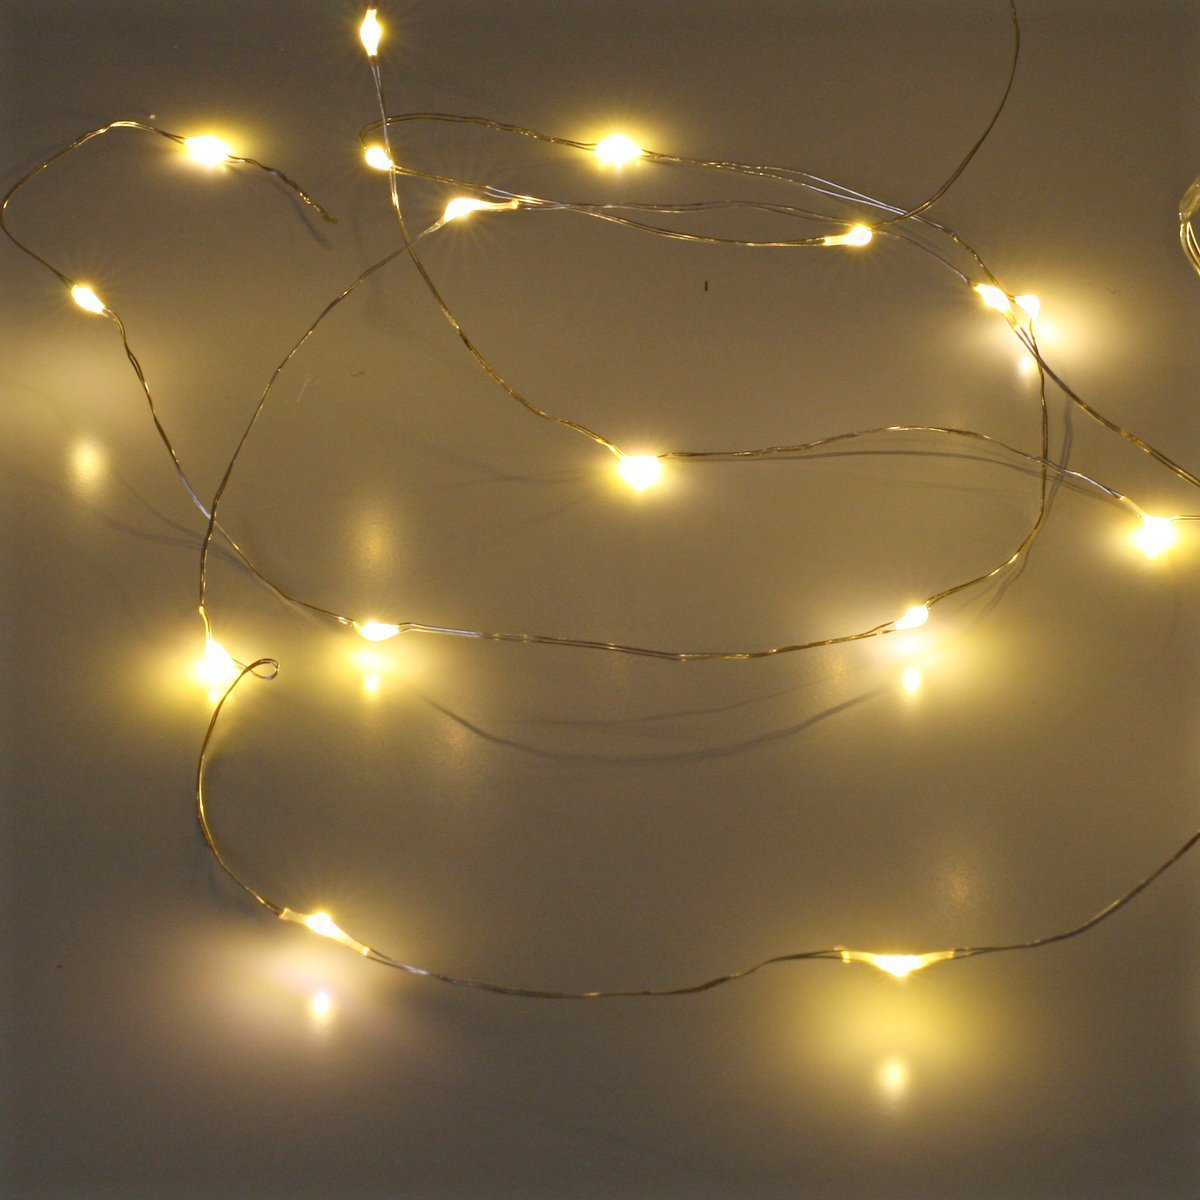 Fairy light string battery operated - Come discover 23 Frugally Fabulous Holiday Decorating Finds Under $20 + Funny Quotes! #holidaydecor #lowcost #decorinspiration